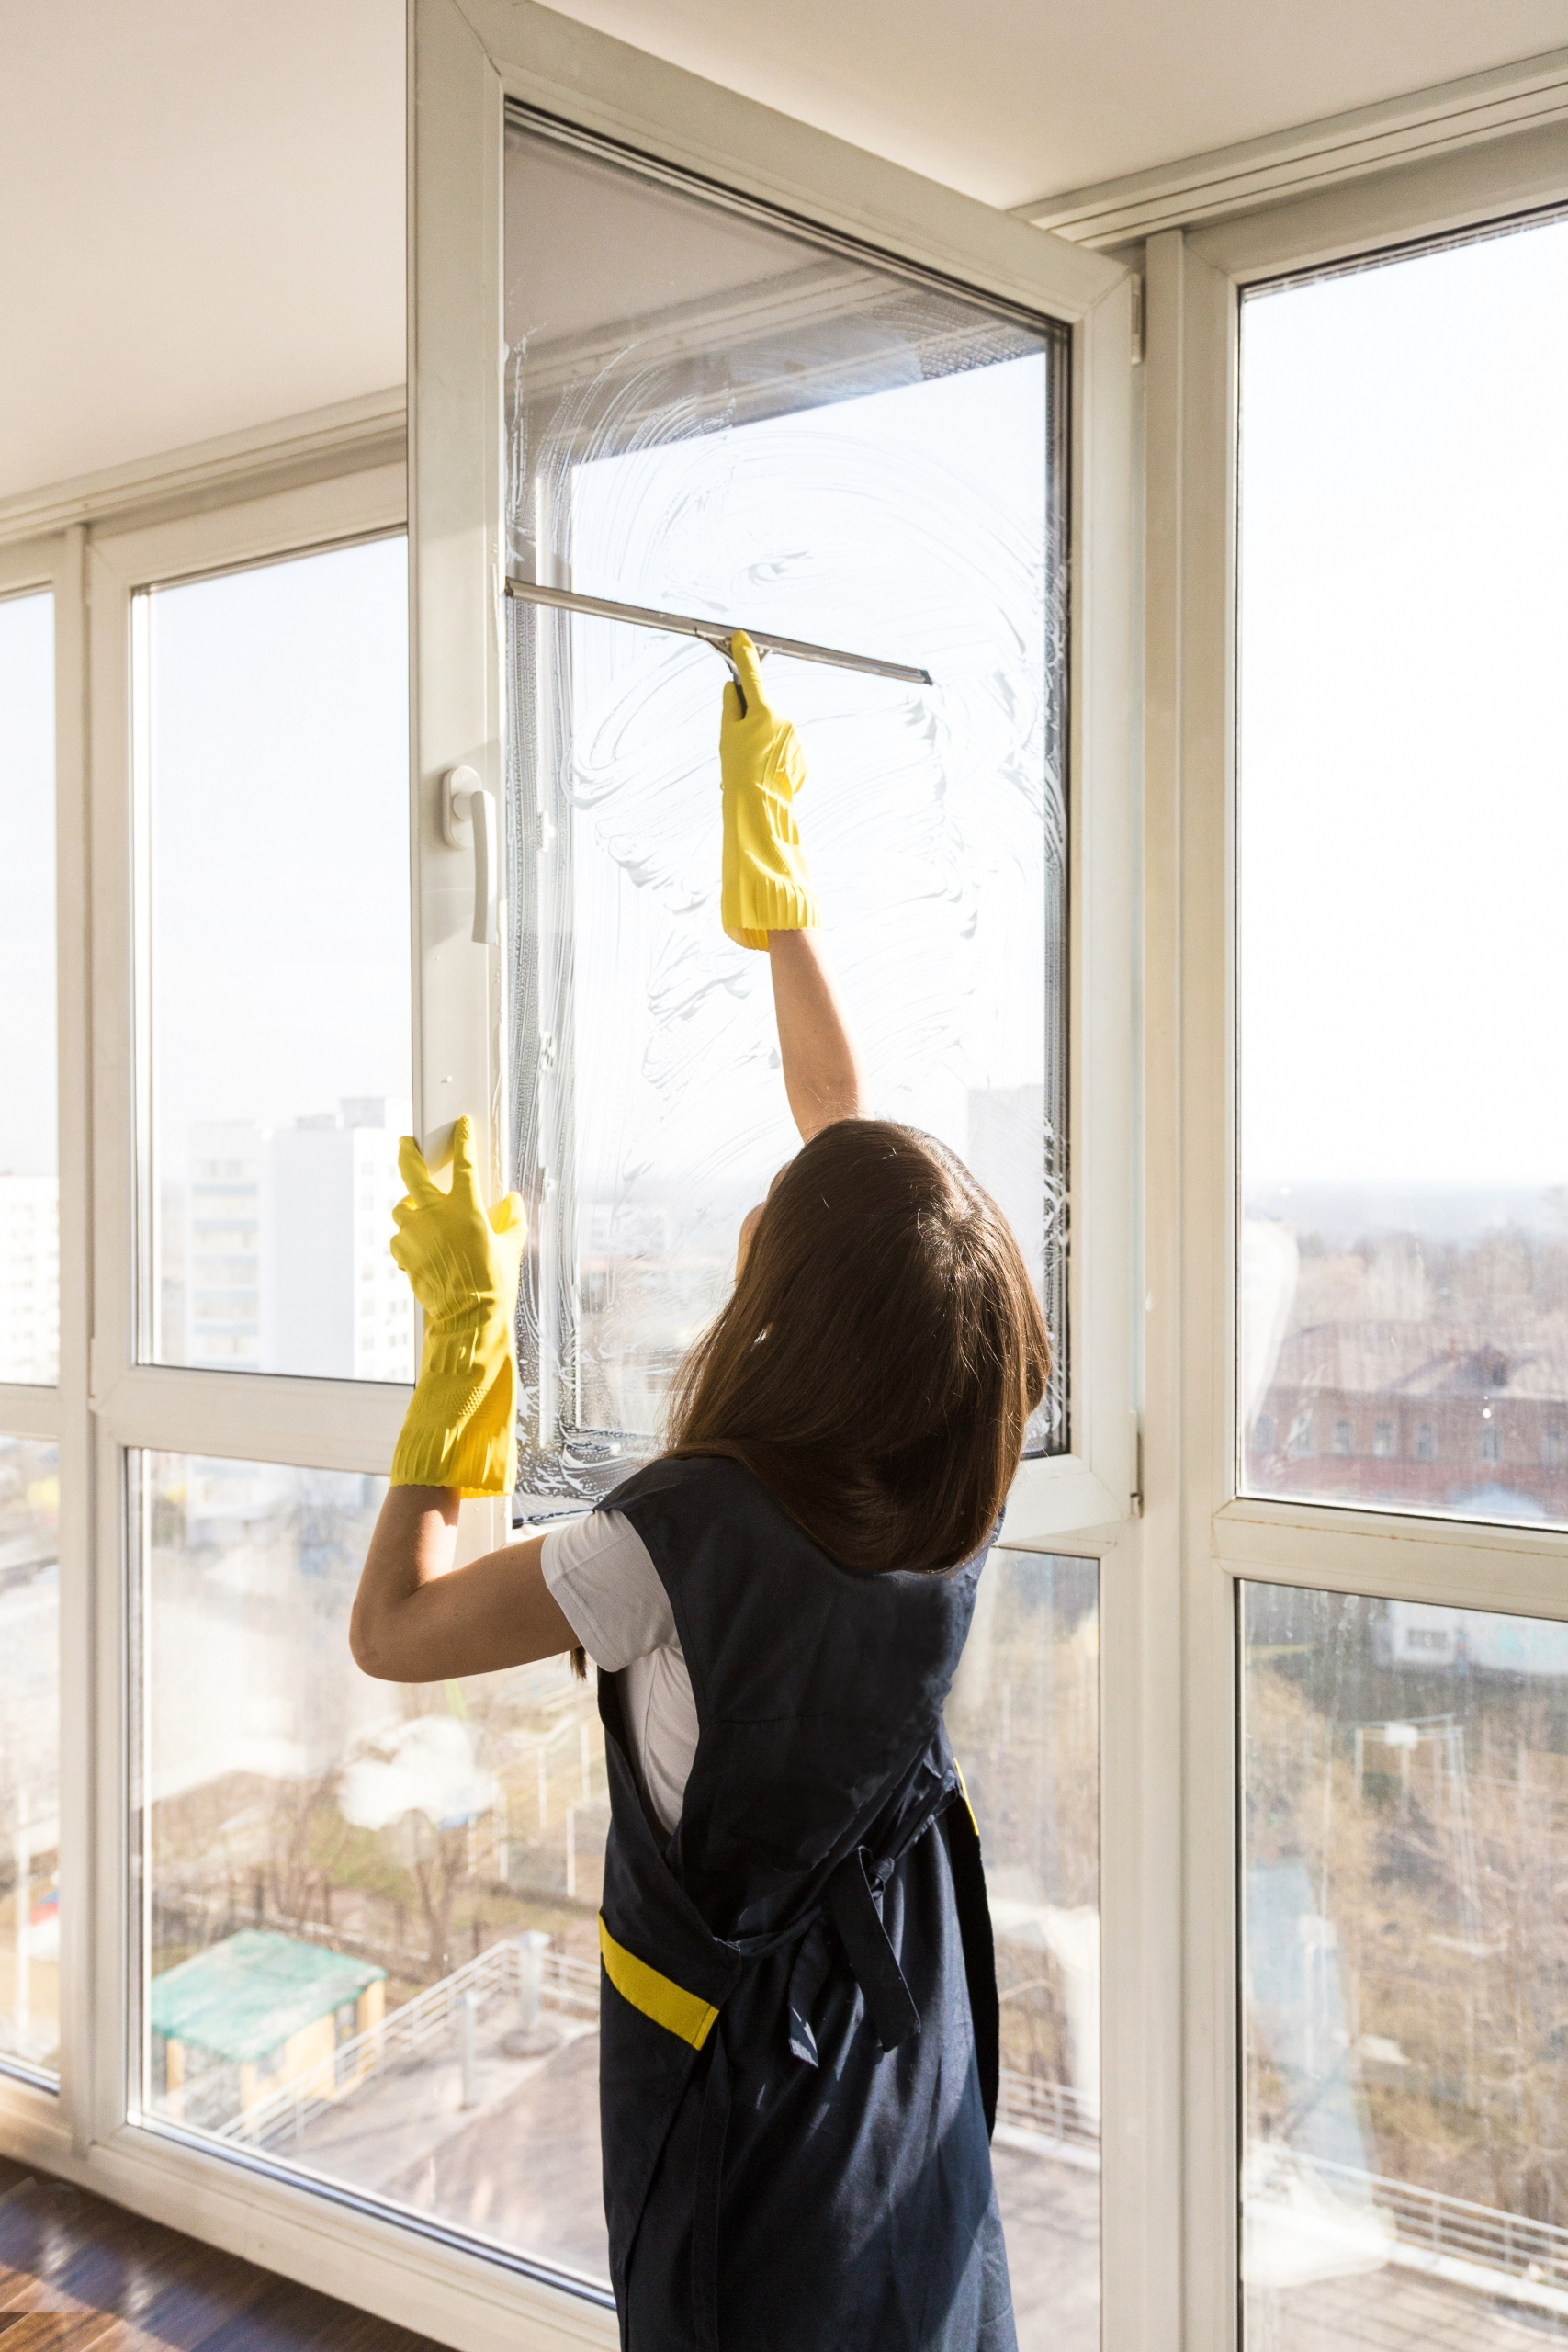 woman in uniform and yellow gloves washes a windows with window scraper